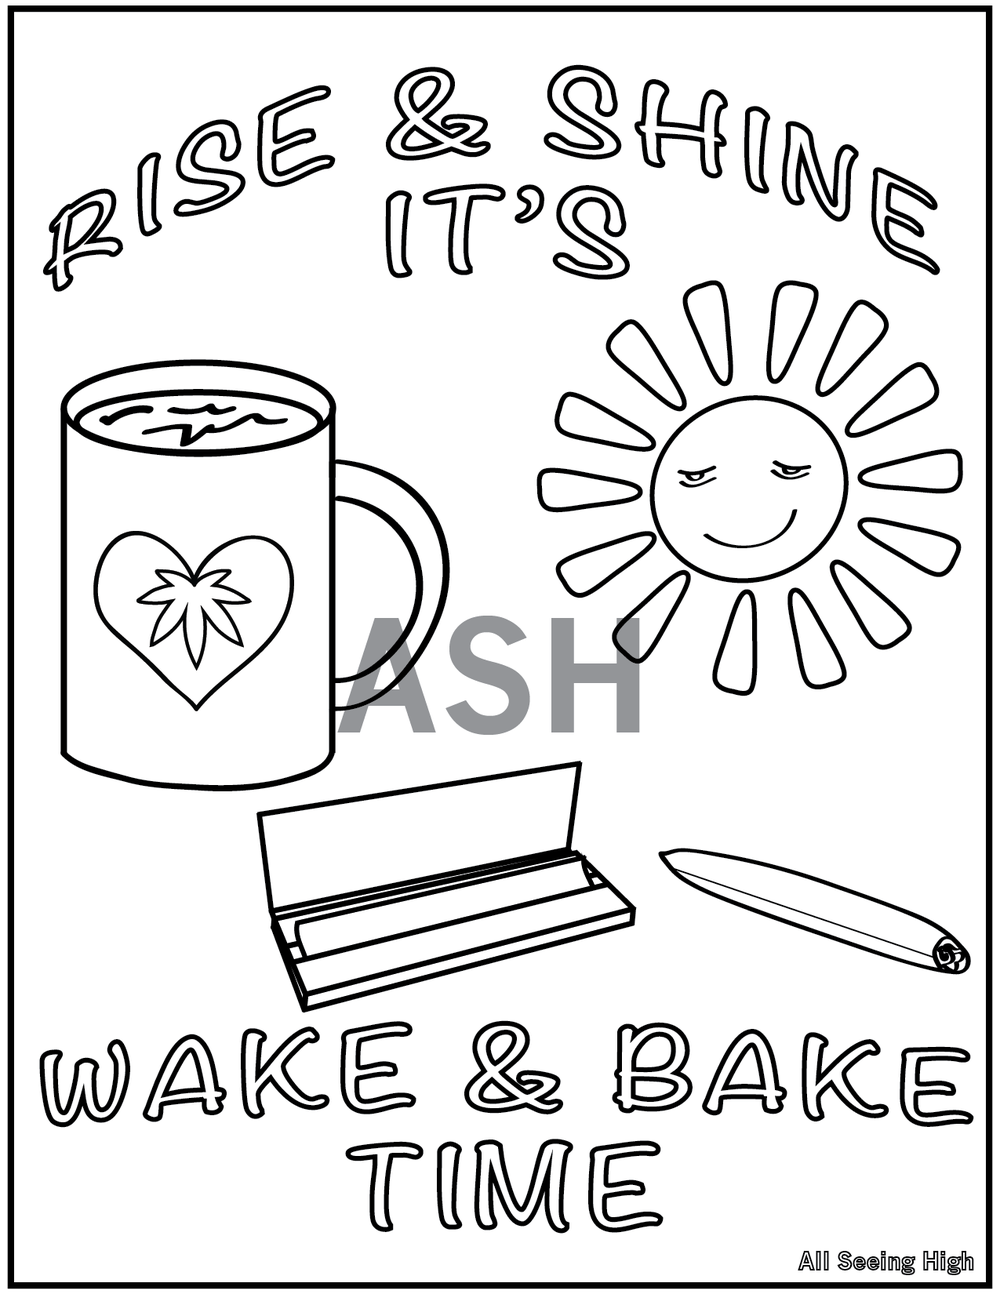 Rise and Shine-02.png